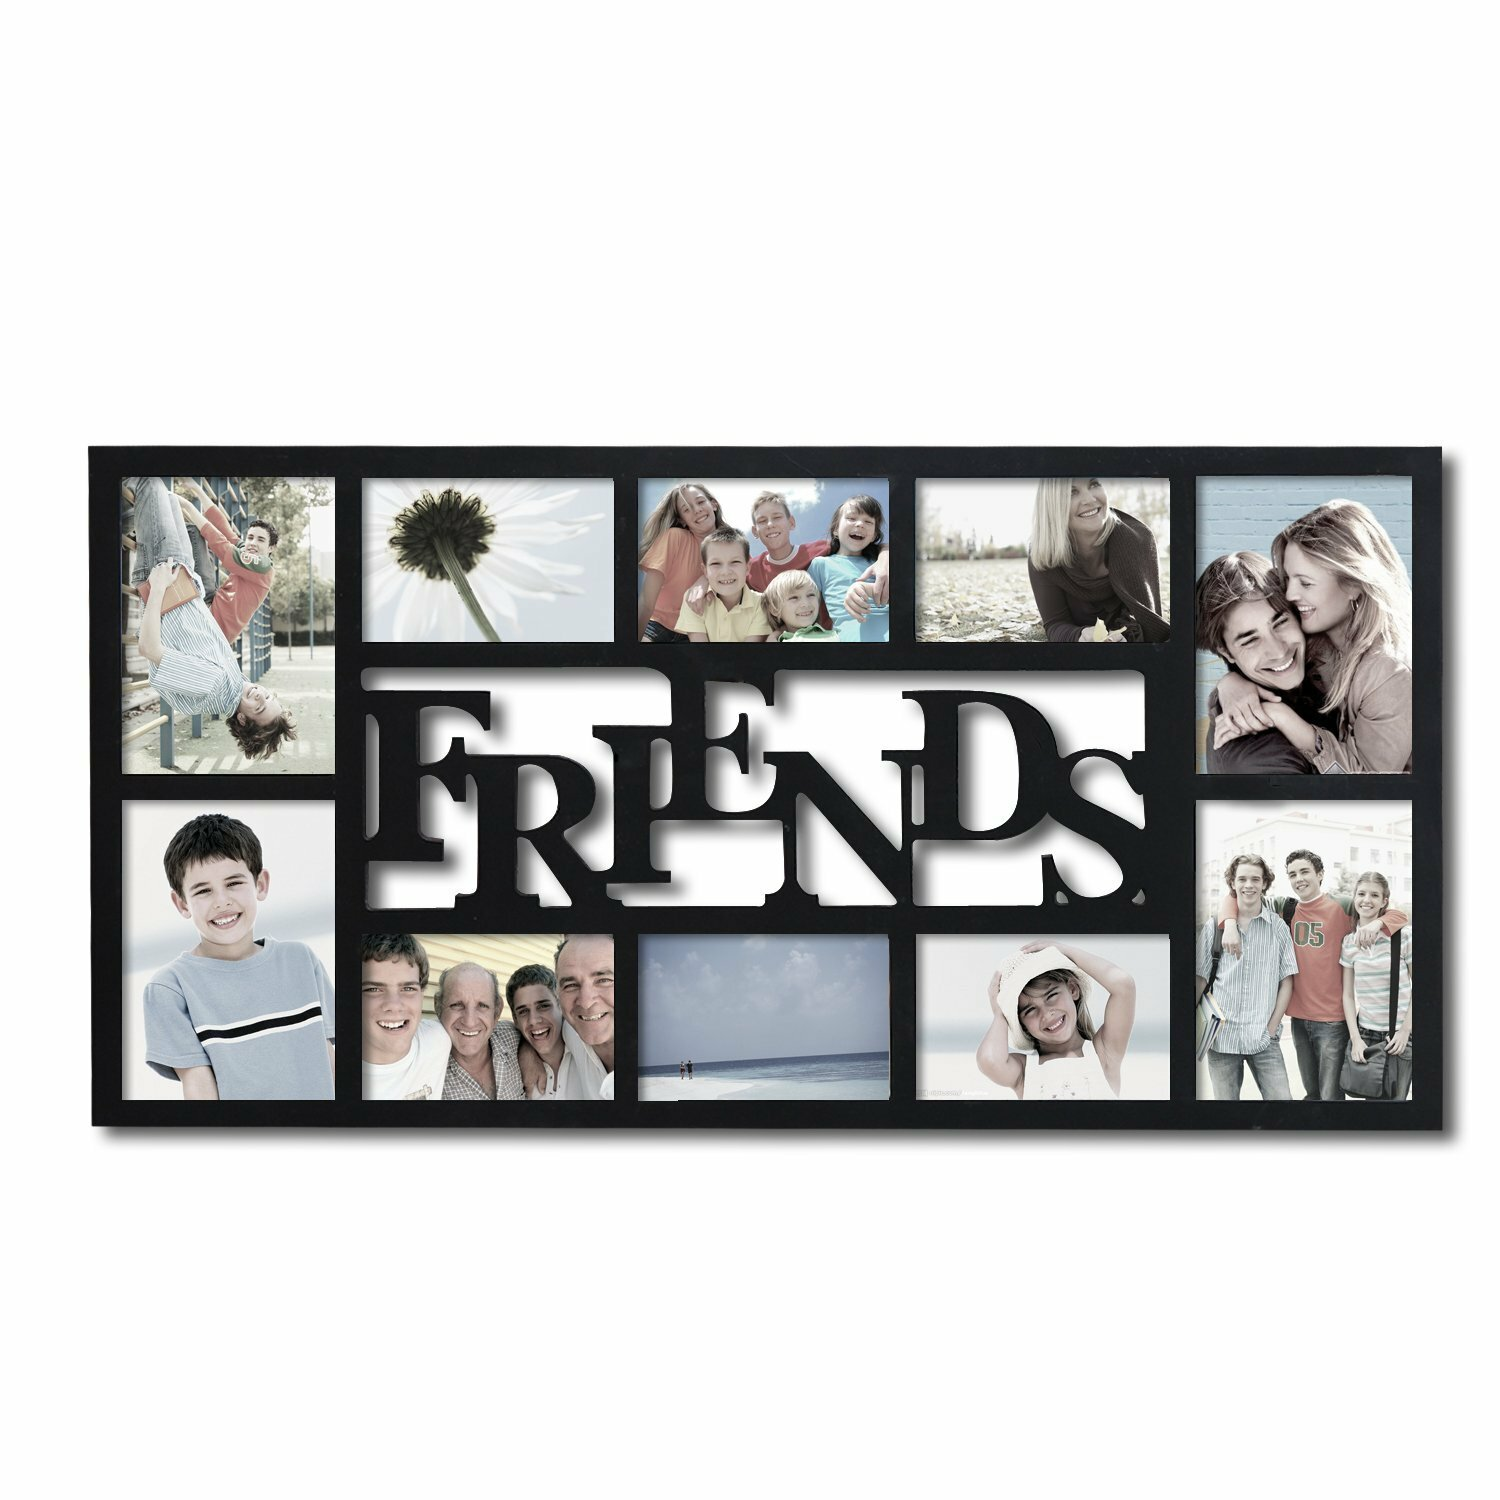 Adecotrading 10 opening decorative friends wall hanging collage adecotrading 10 opening decorative friends wall hanging collage picture frame reviews wayfair jeuxipadfo Image collections